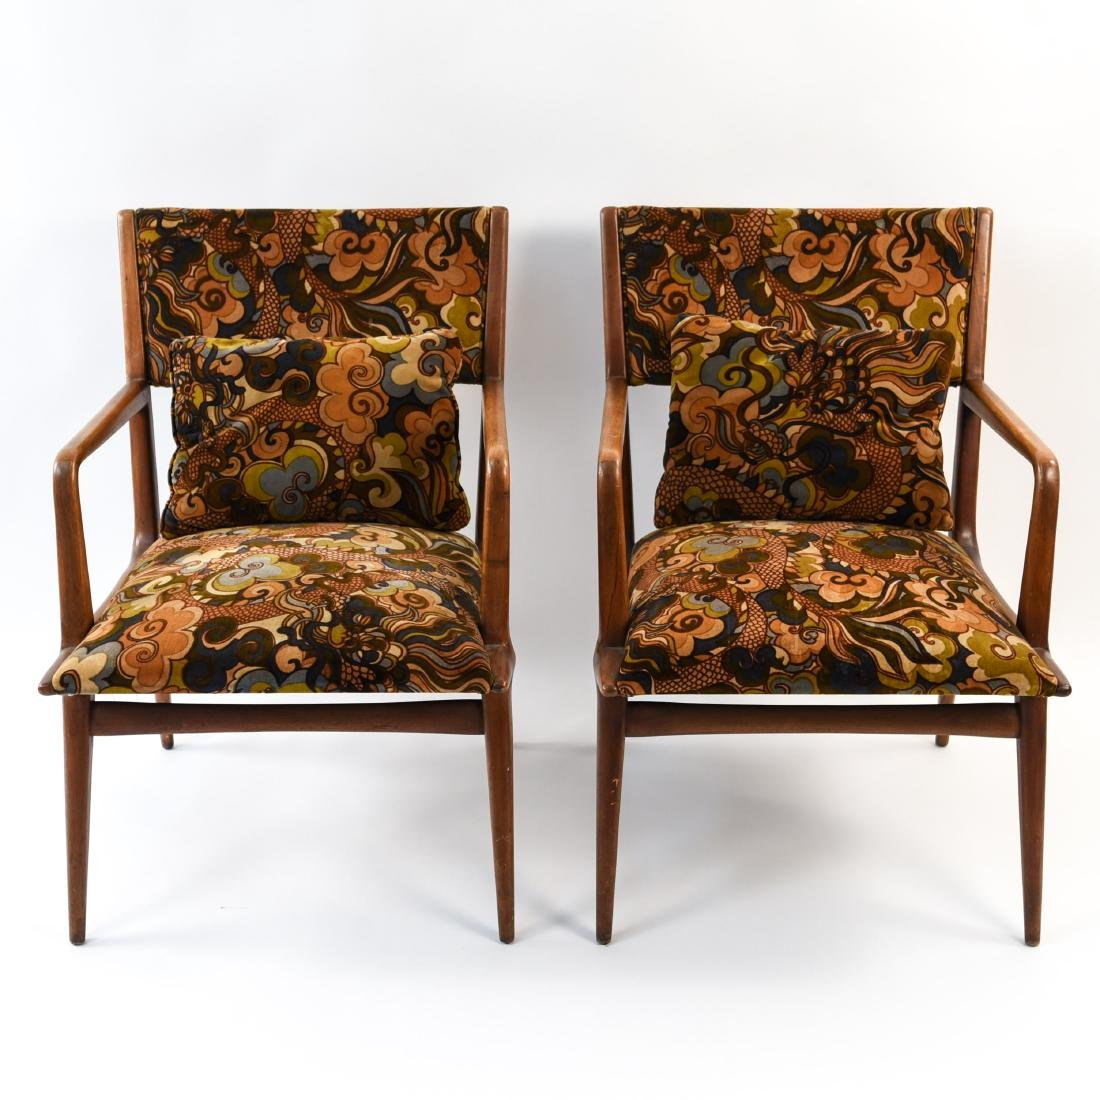 PAIR OF MID-CENTURY LOUNGE CHAIRS